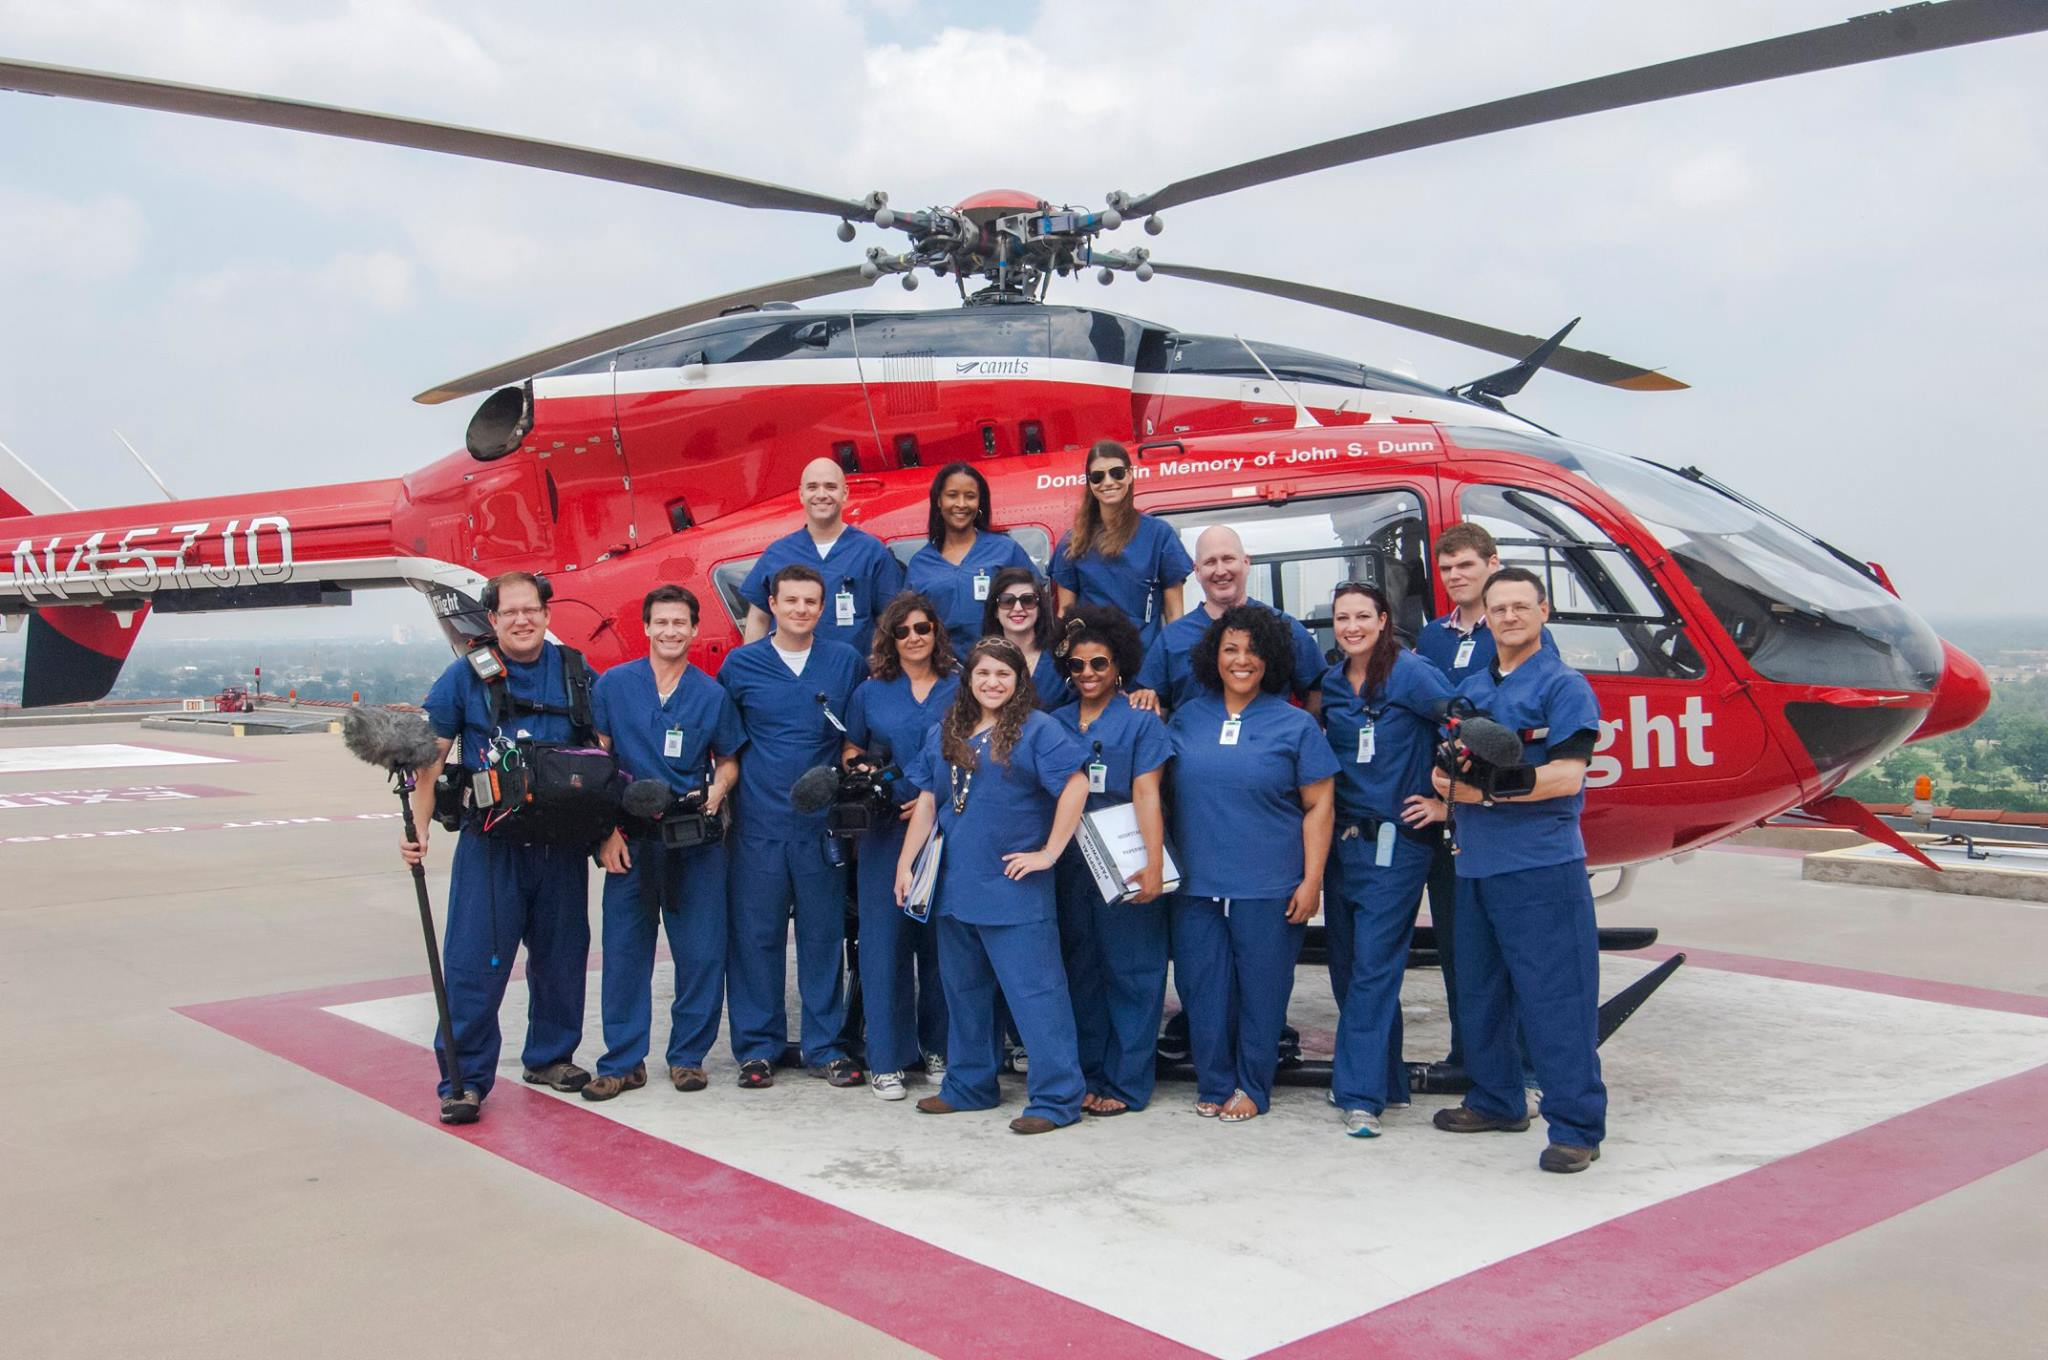 Life Flight Trauma Center Houston